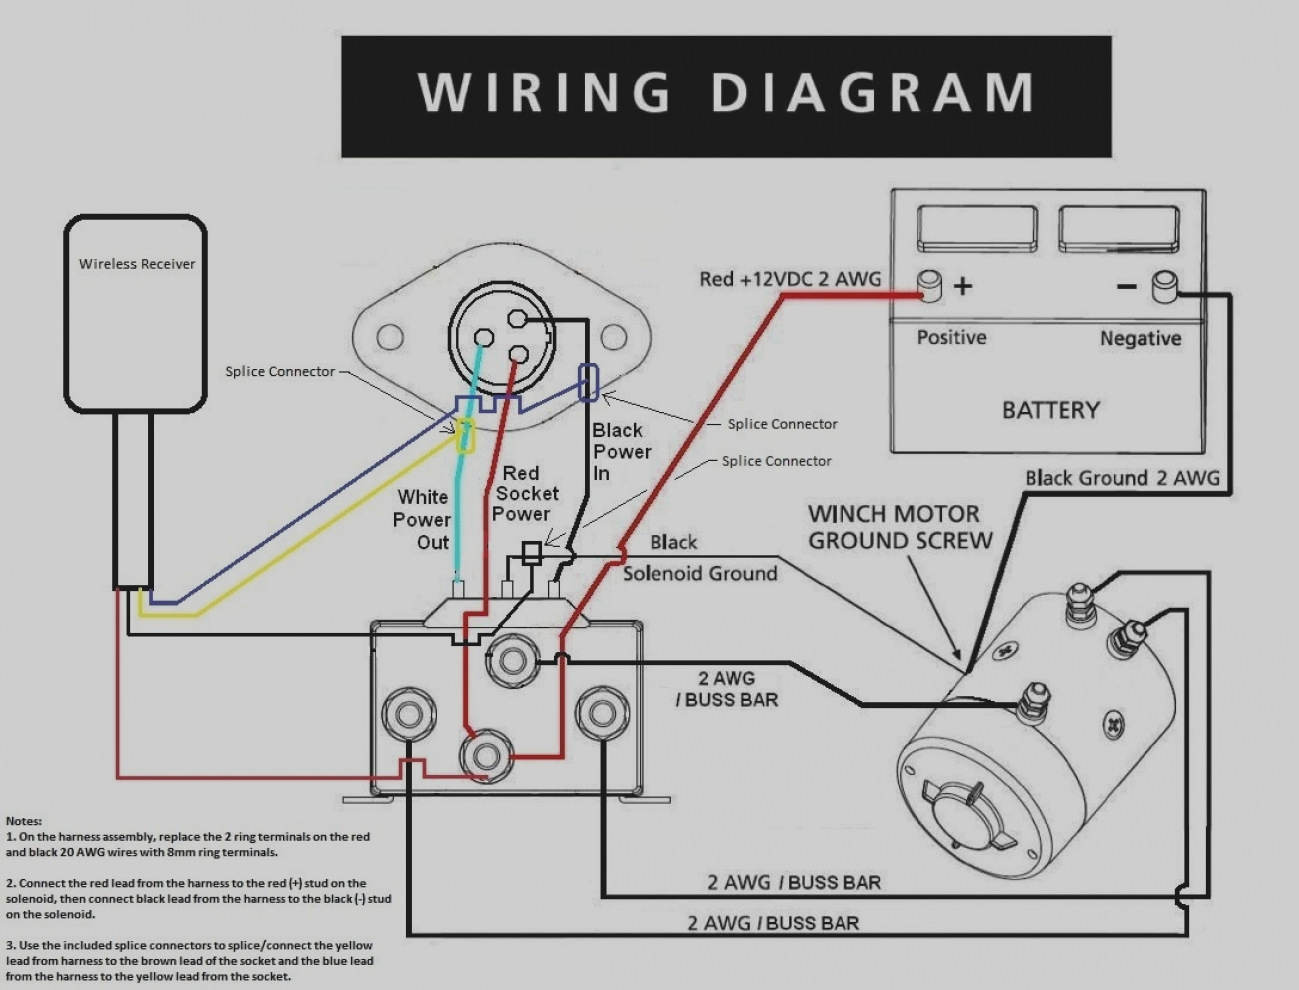 smittybilt winch solenoid wiring diagram wiring wiring. Black Bedroom Furniture Sets. Home Design Ideas